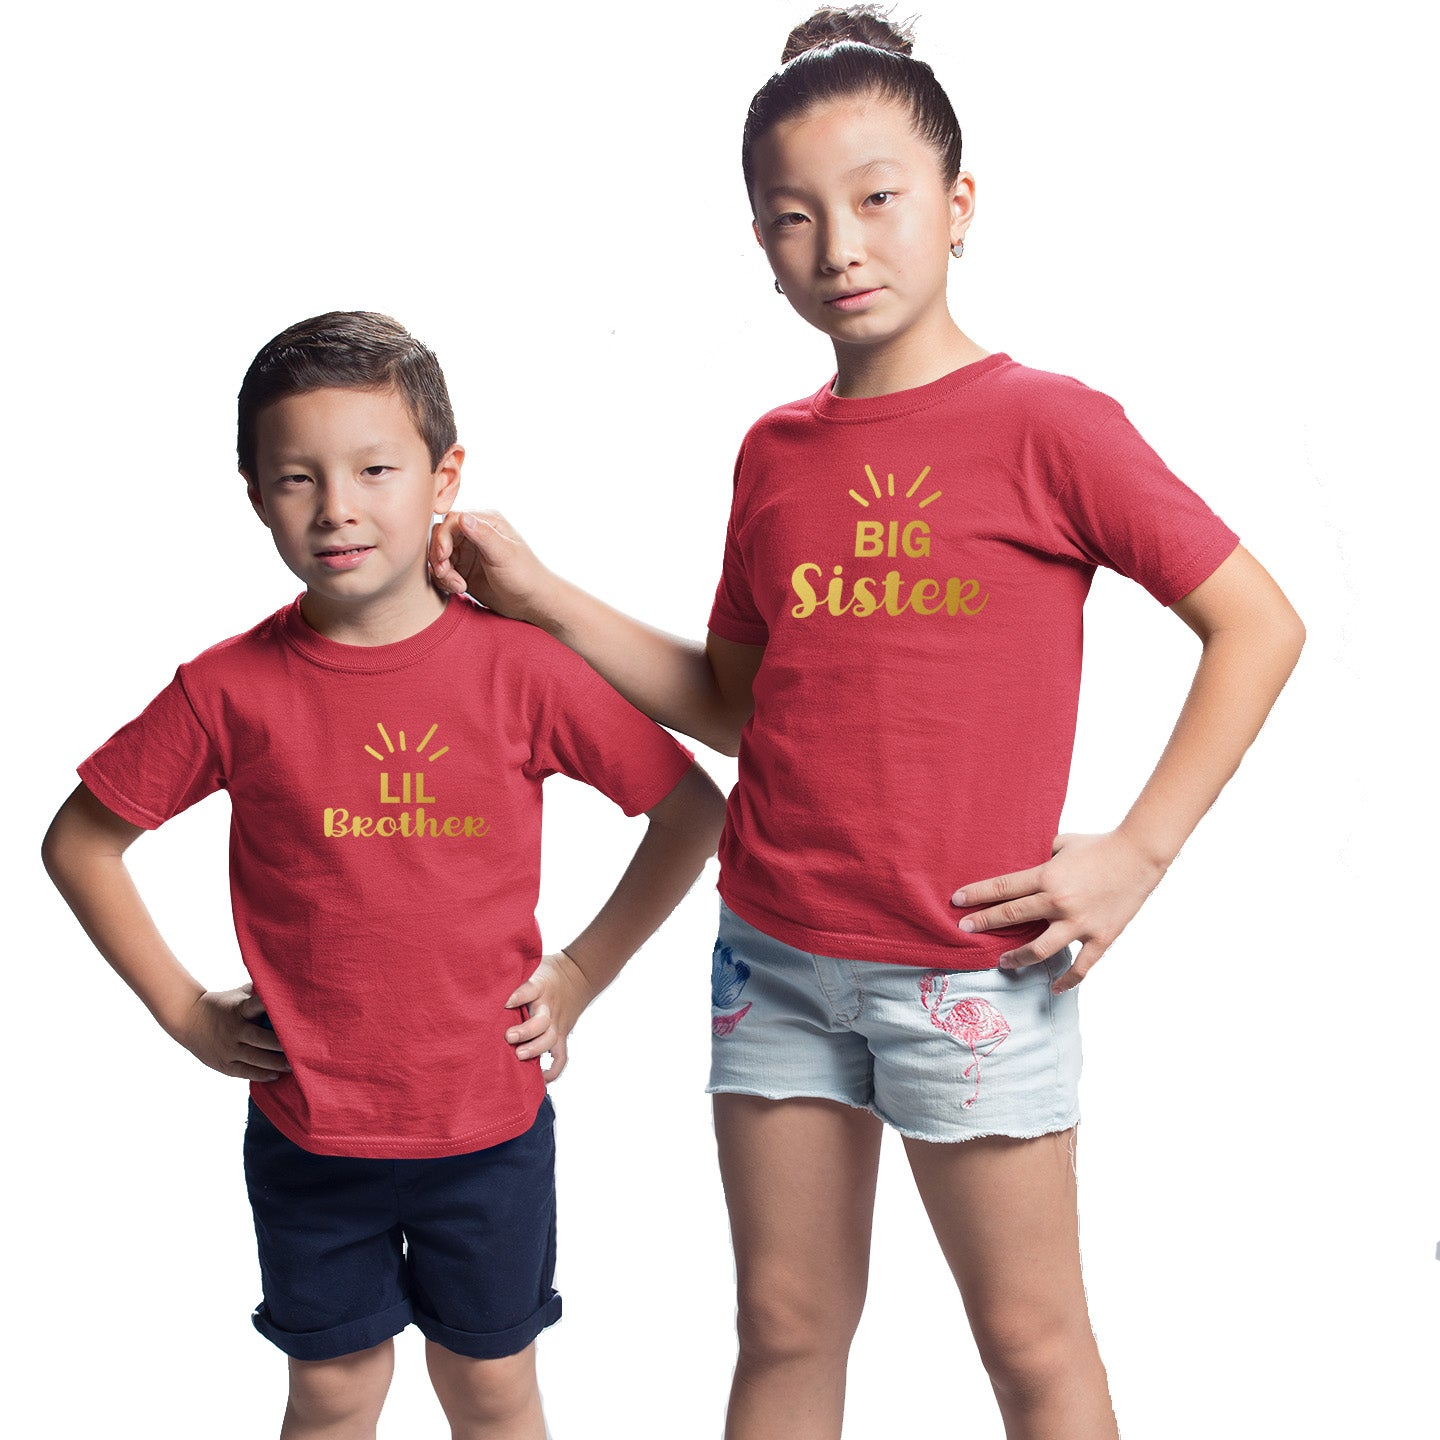 Sprinklecart Matching Big Sister Lil Brother Kids Cotton T Shirts Combo Set (Red)